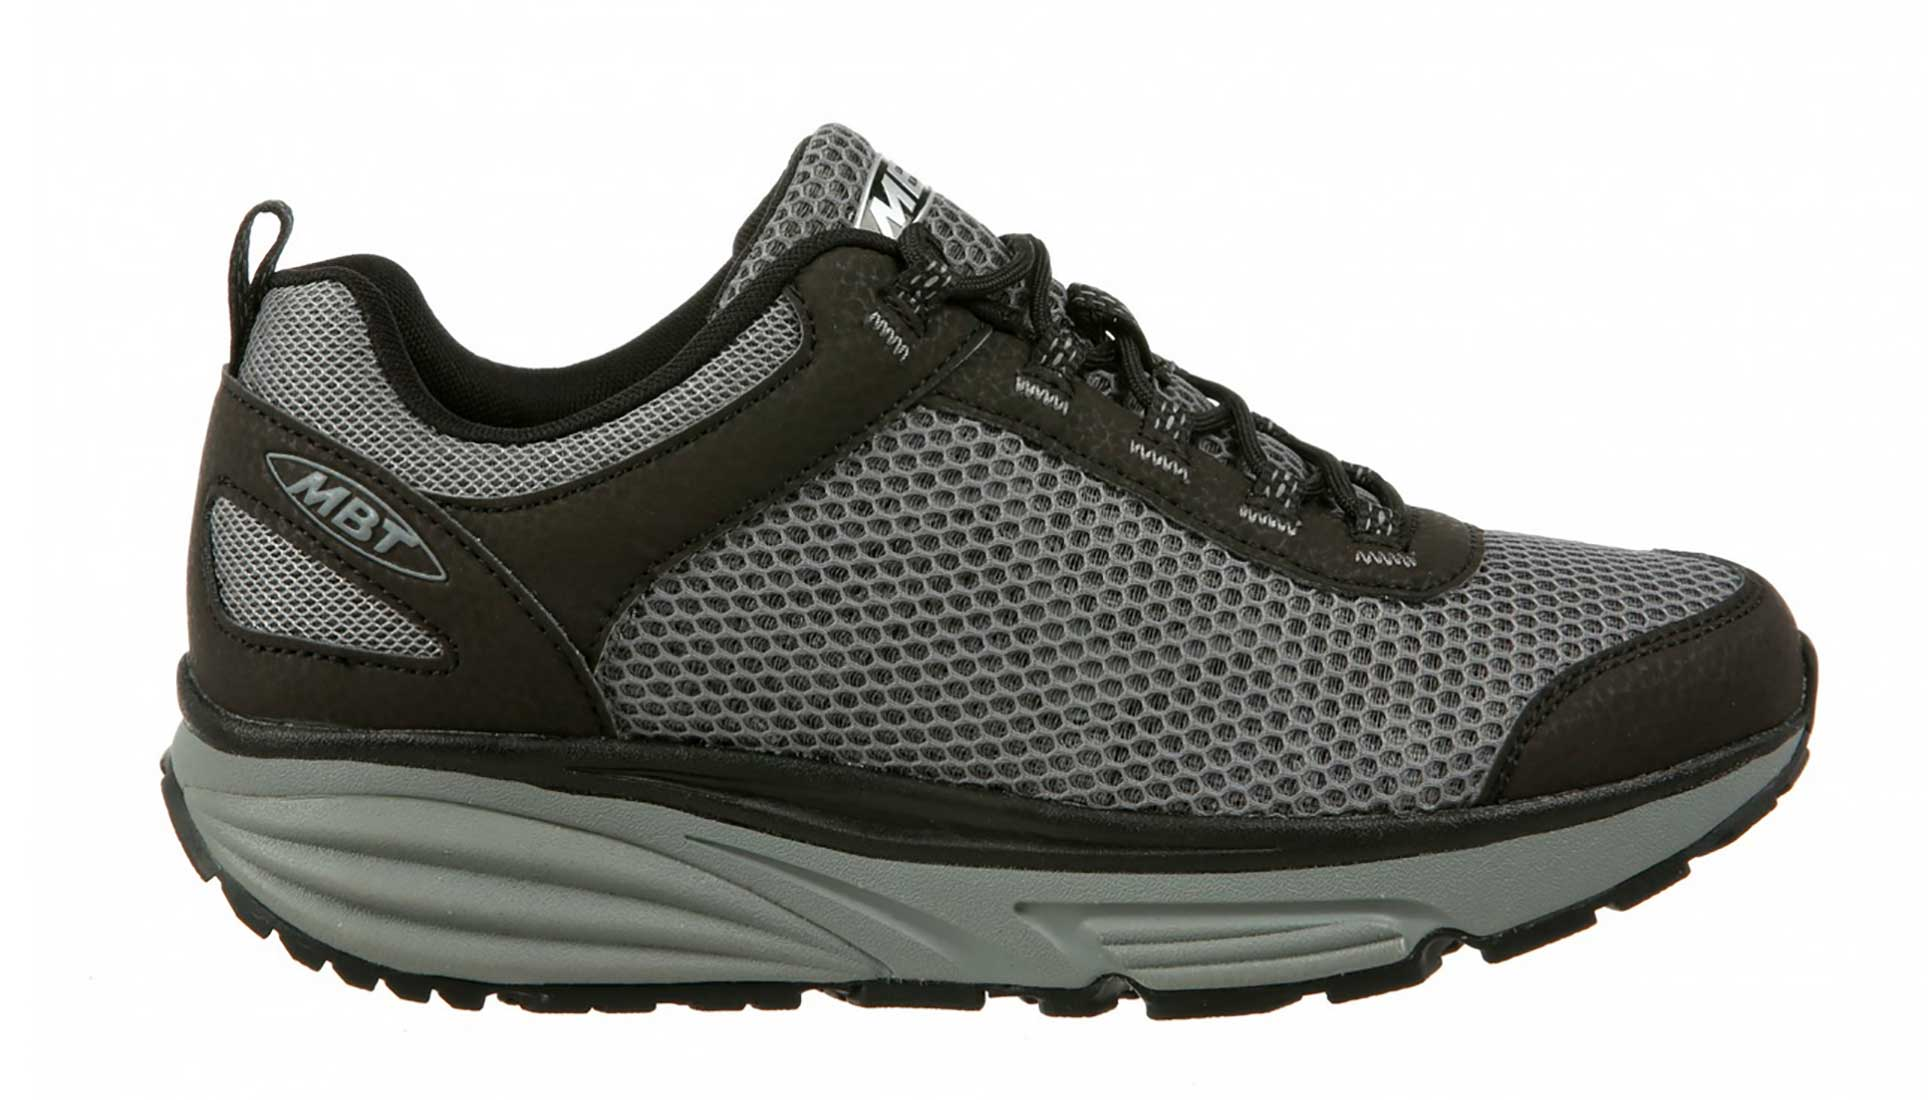 new arrival d6ecf 767ac MBT Shoes Women s Colorado 17 Lace Up Athletic Shoe - Moderate, Casual,  Therapeutic, and Comfort Shoe